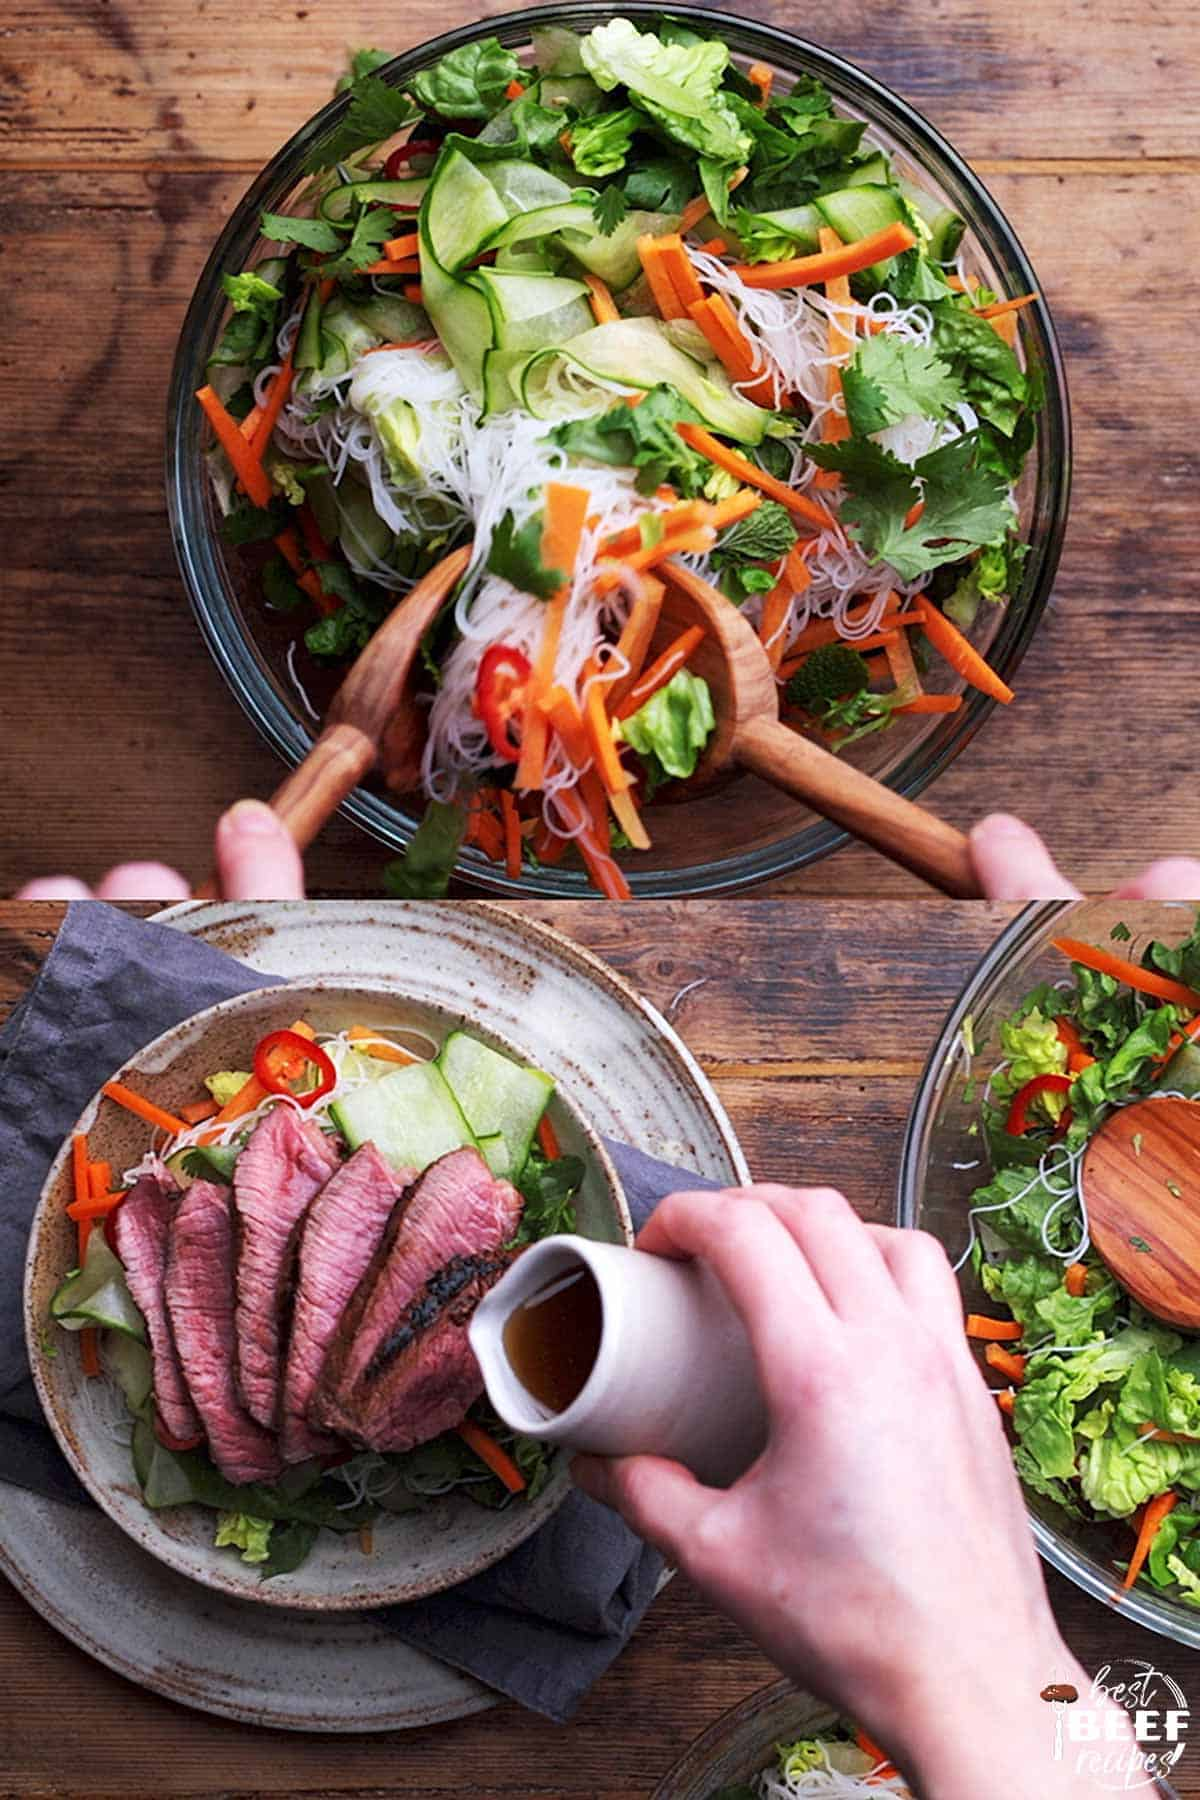 Mixing the Vietnamese beef salad and adding the steak and dressing